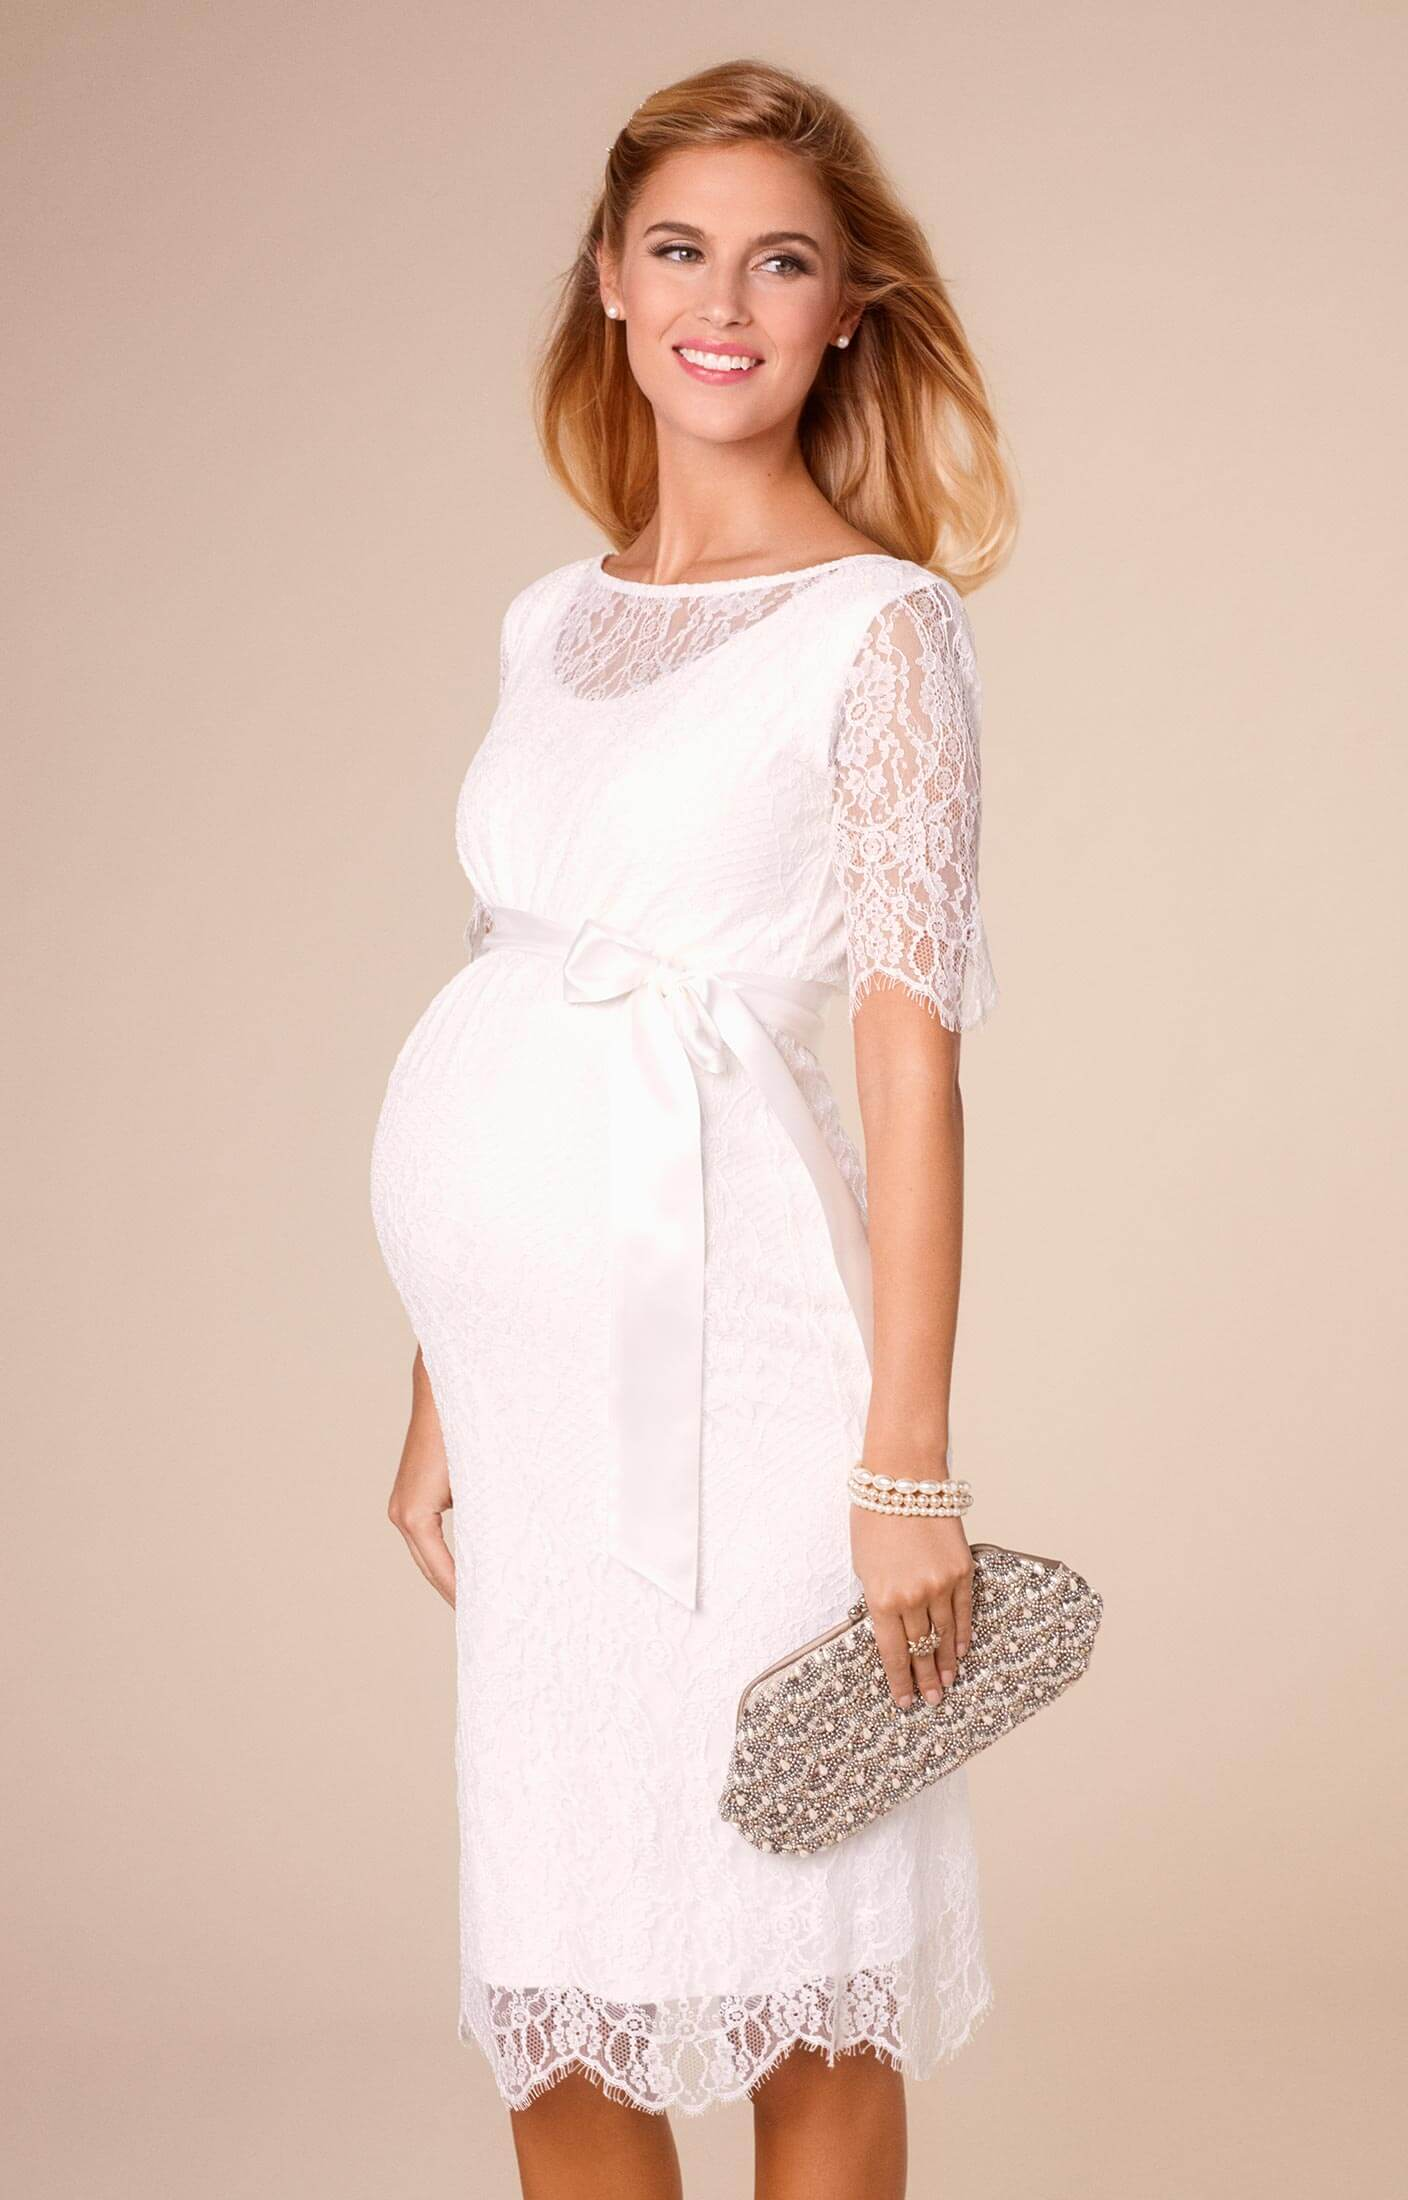 Starla maternity wedding dress short ivory maternity for Wedding guest pregnancy dresses